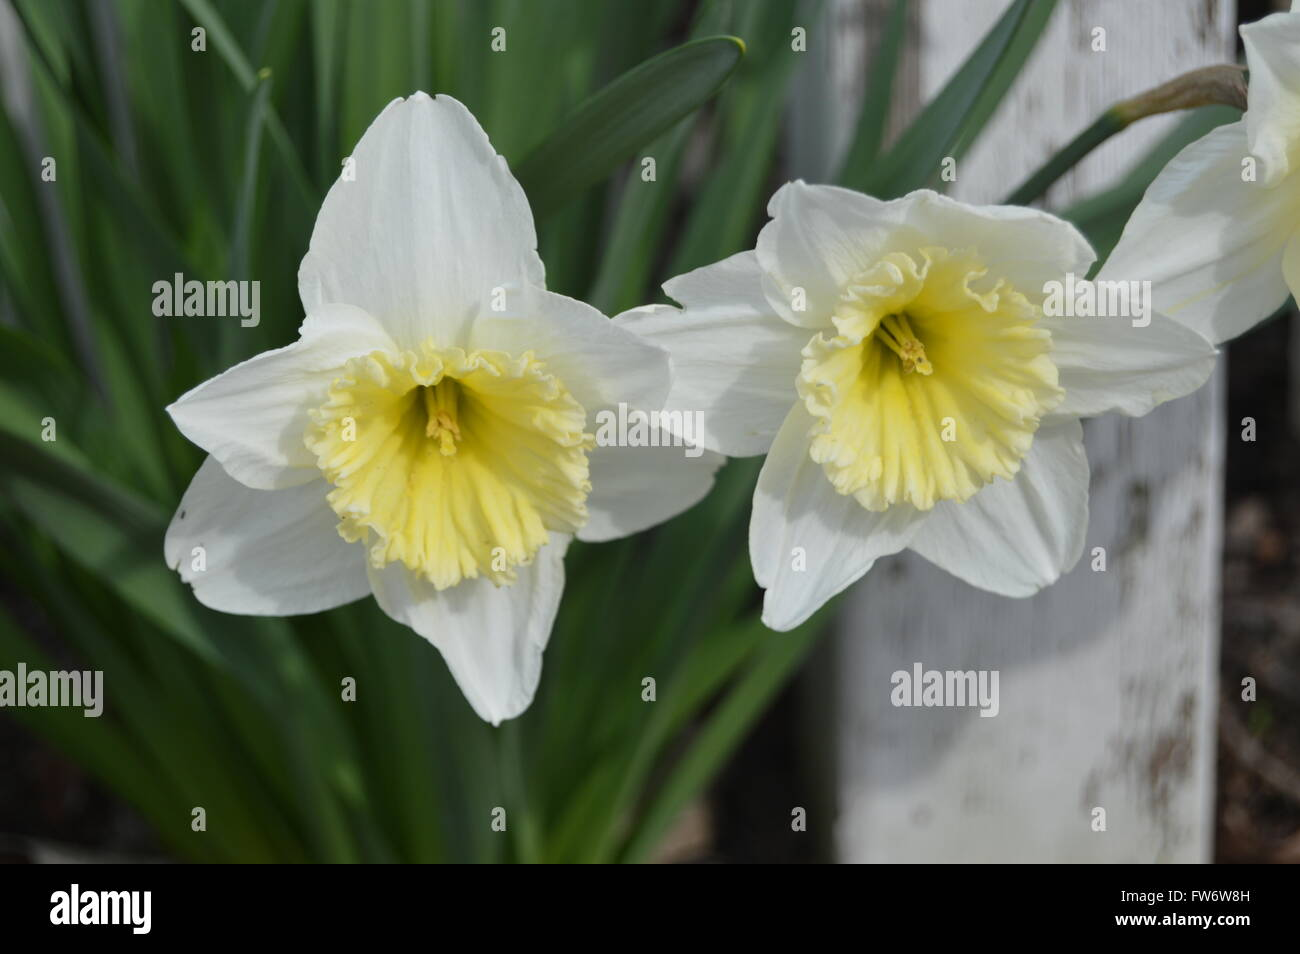 A picture of two white daffodils with a rustic white fence post in the background. - Stock Image